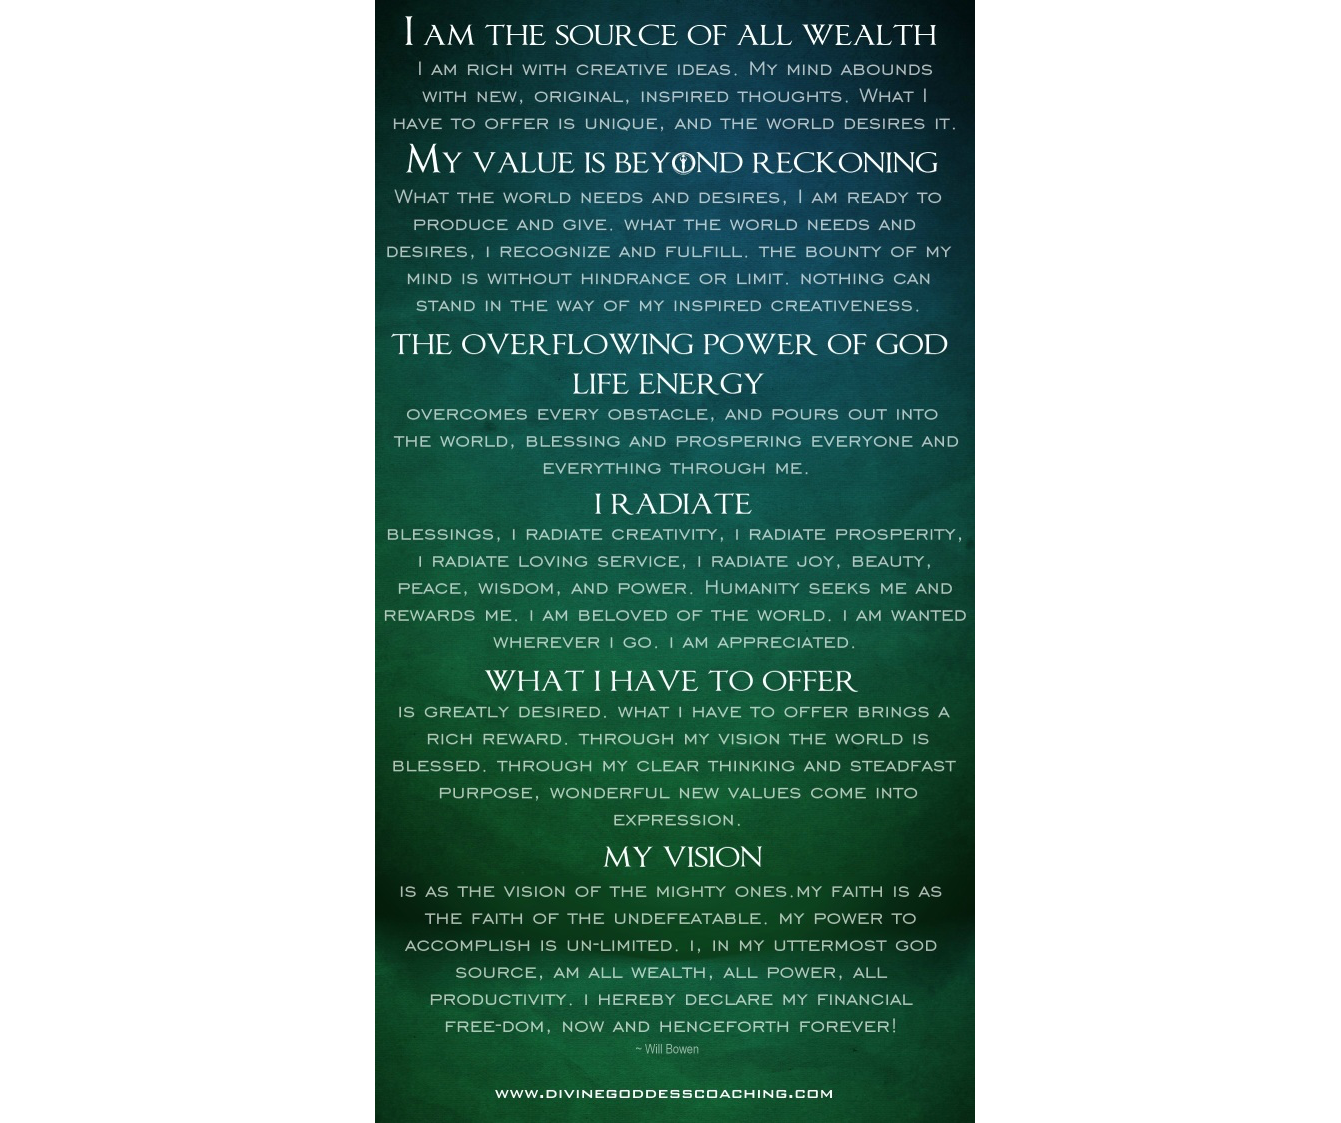 30-Day-Prosperity-Prayer-600.jpg 600×1,123 pixels | Awesome Screenshot